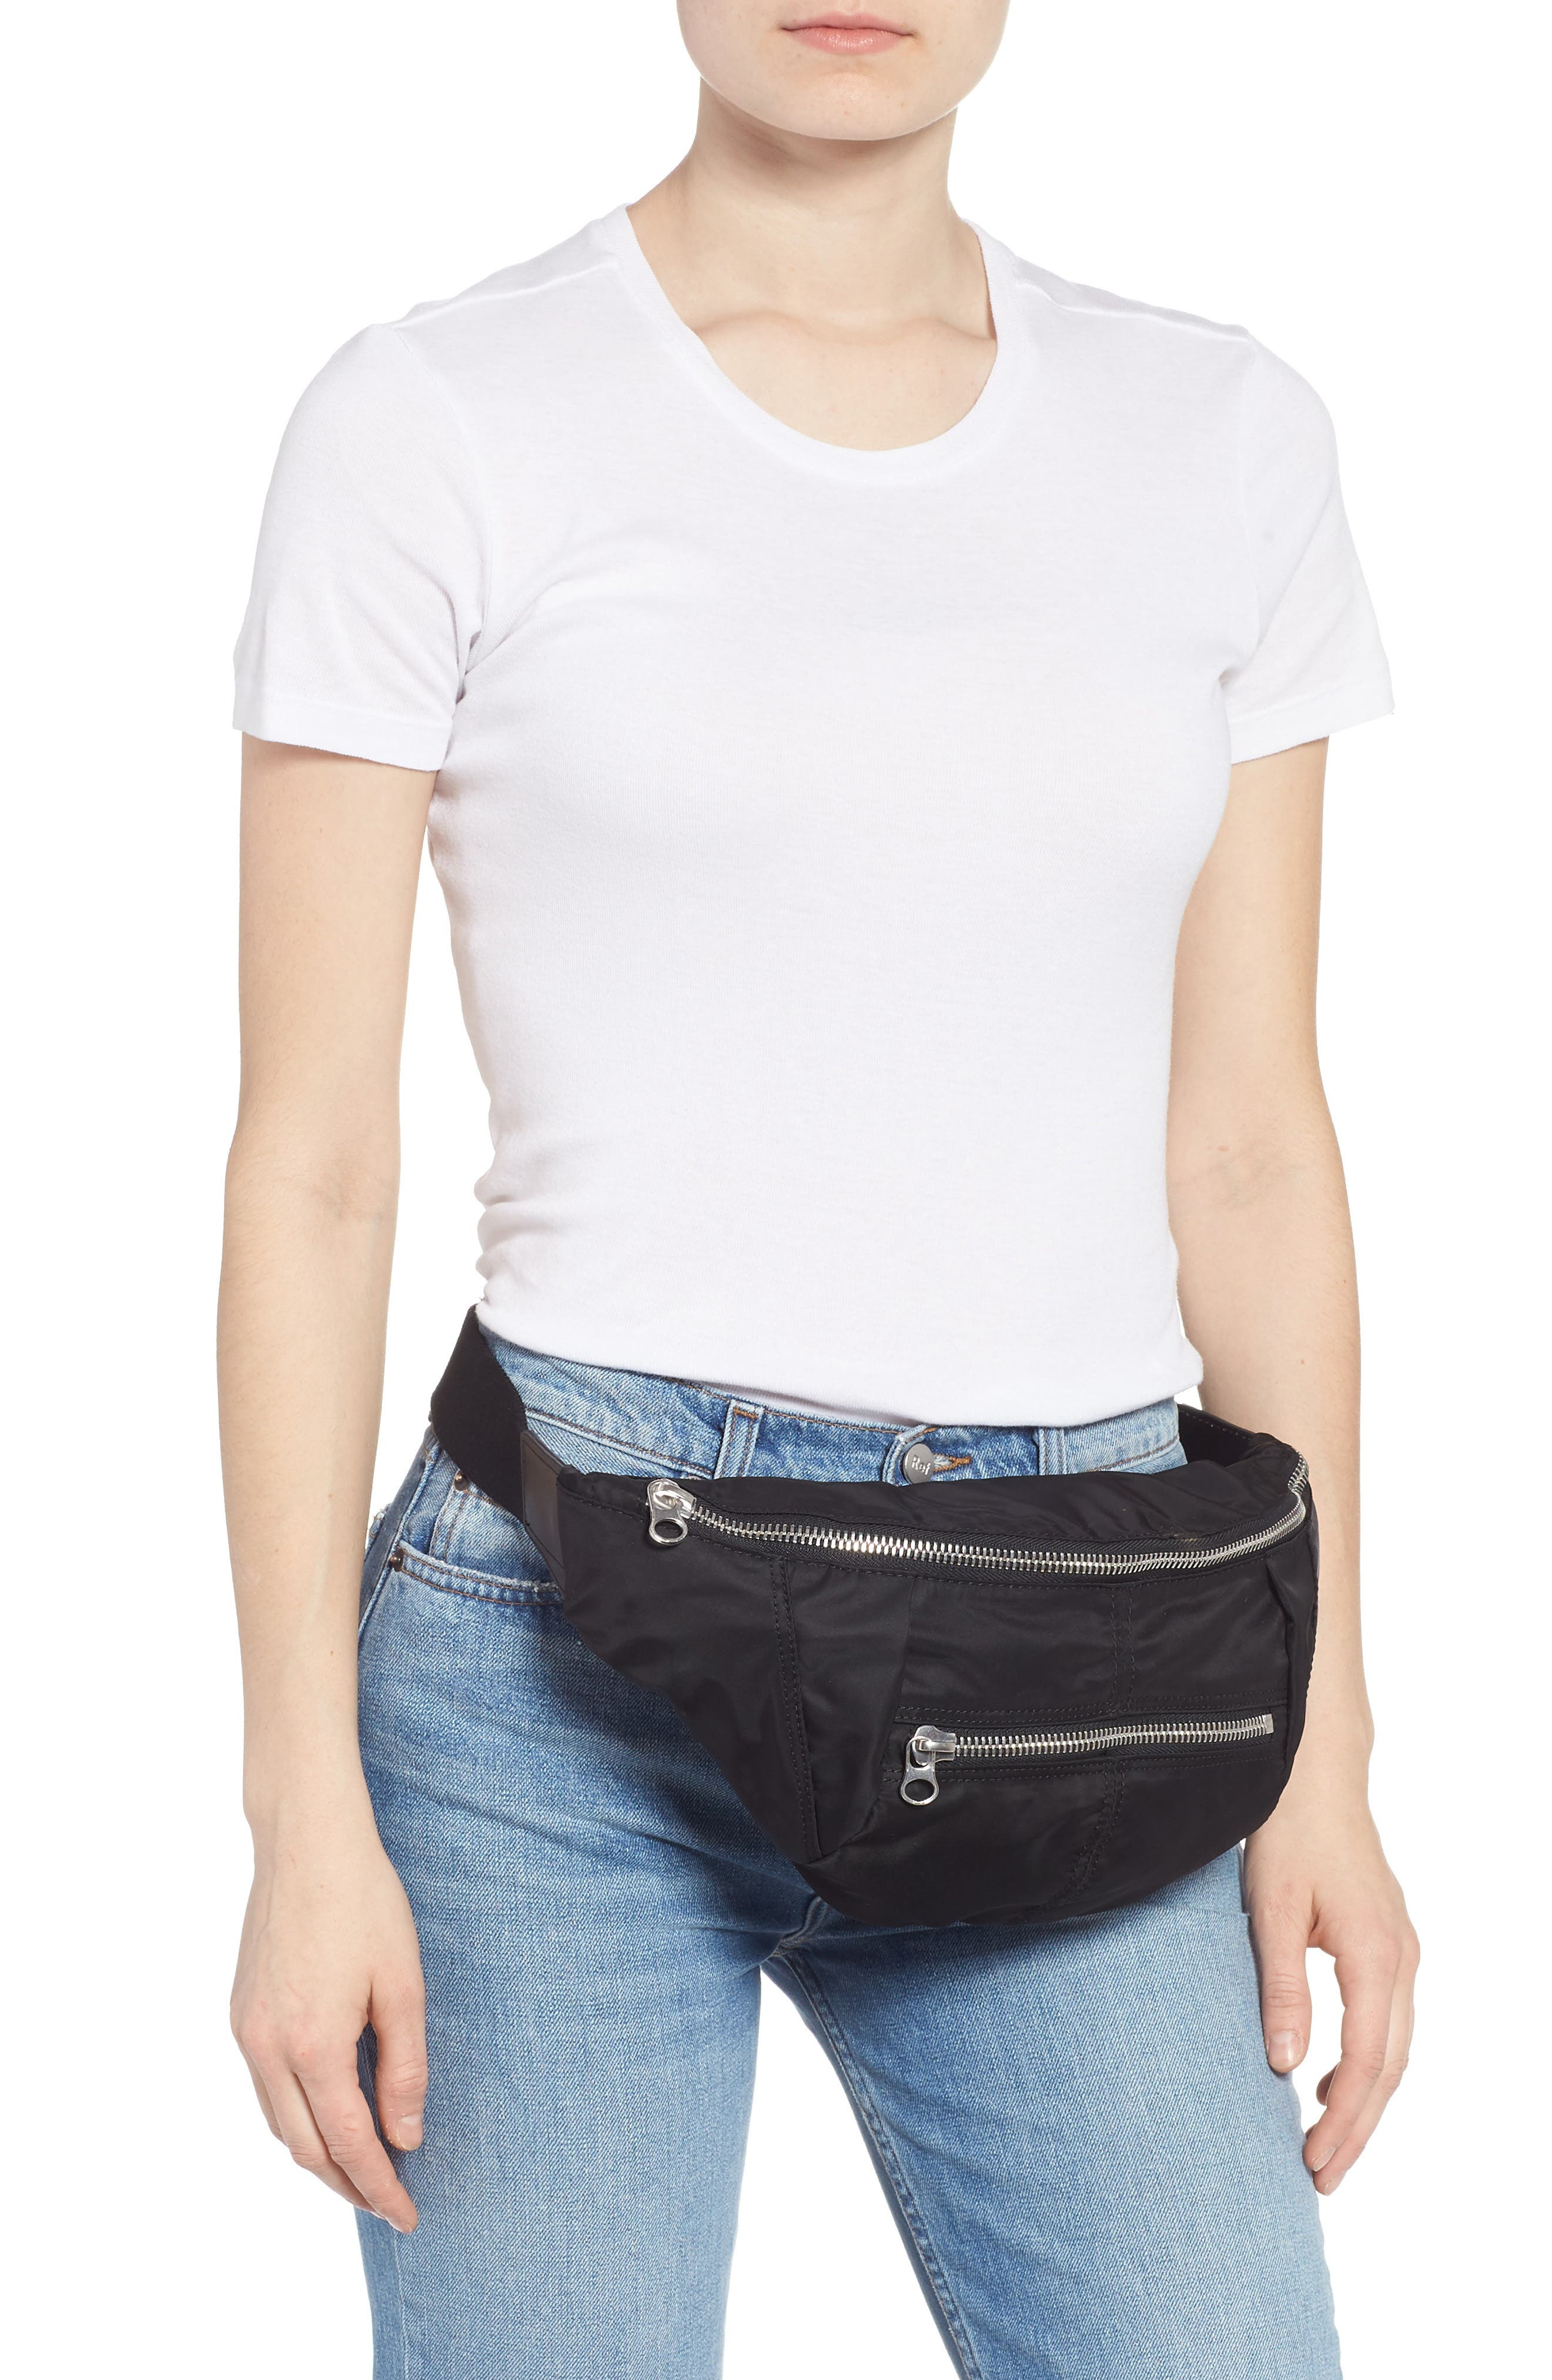 Noomi Fanny Pack,                             Alternate thumbnail 2, color,                             BLACK